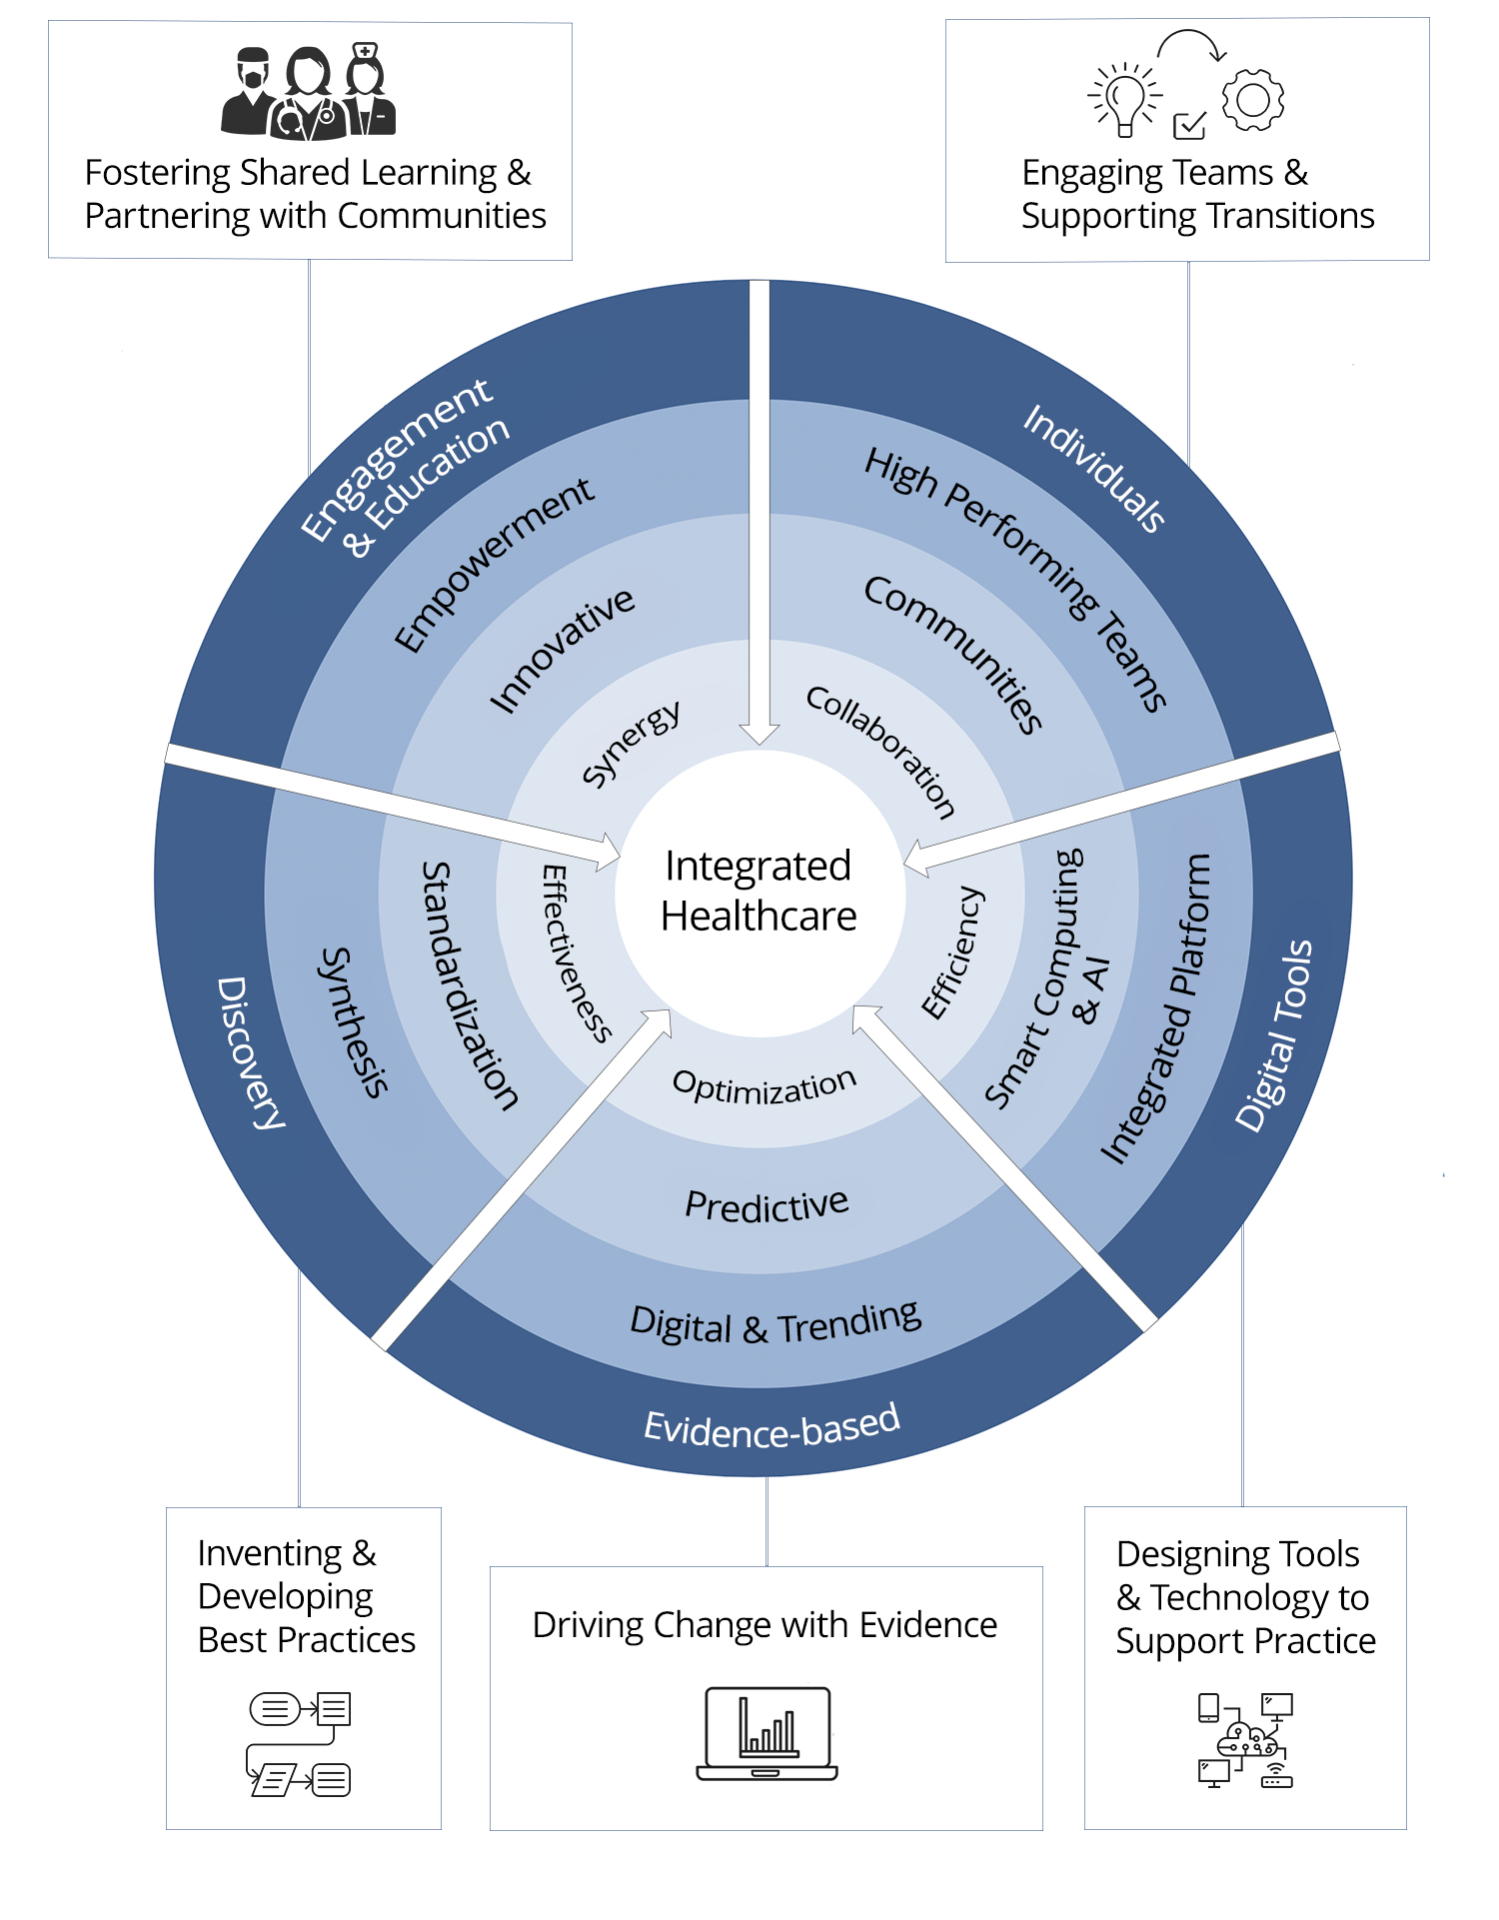 A circular graphic with five sections feeding into the centre, to represent the elements of Integrated Healthcare. In one section: Foster Shared Learning & Partnering With Communities, Engagement & Education, Empowerment, Innovative & Synergy. In the next section: Inventing and Developing Best Practices, Discovery, Synthesis, Standardization, Effectiveness. In the next section: Driving Change with Evidence, Evidence-Based, Digital & Trending, Predictive, Optimization. In the next section: Designing Tools & Technology to Support Practice, Digital Tools, Integrated Platform, Smart Computing & AI, Efficiency. In the final section: Engaging Teams & Supporting Transitions, Individuals, High Performing Teams, Communities and Collaboration.